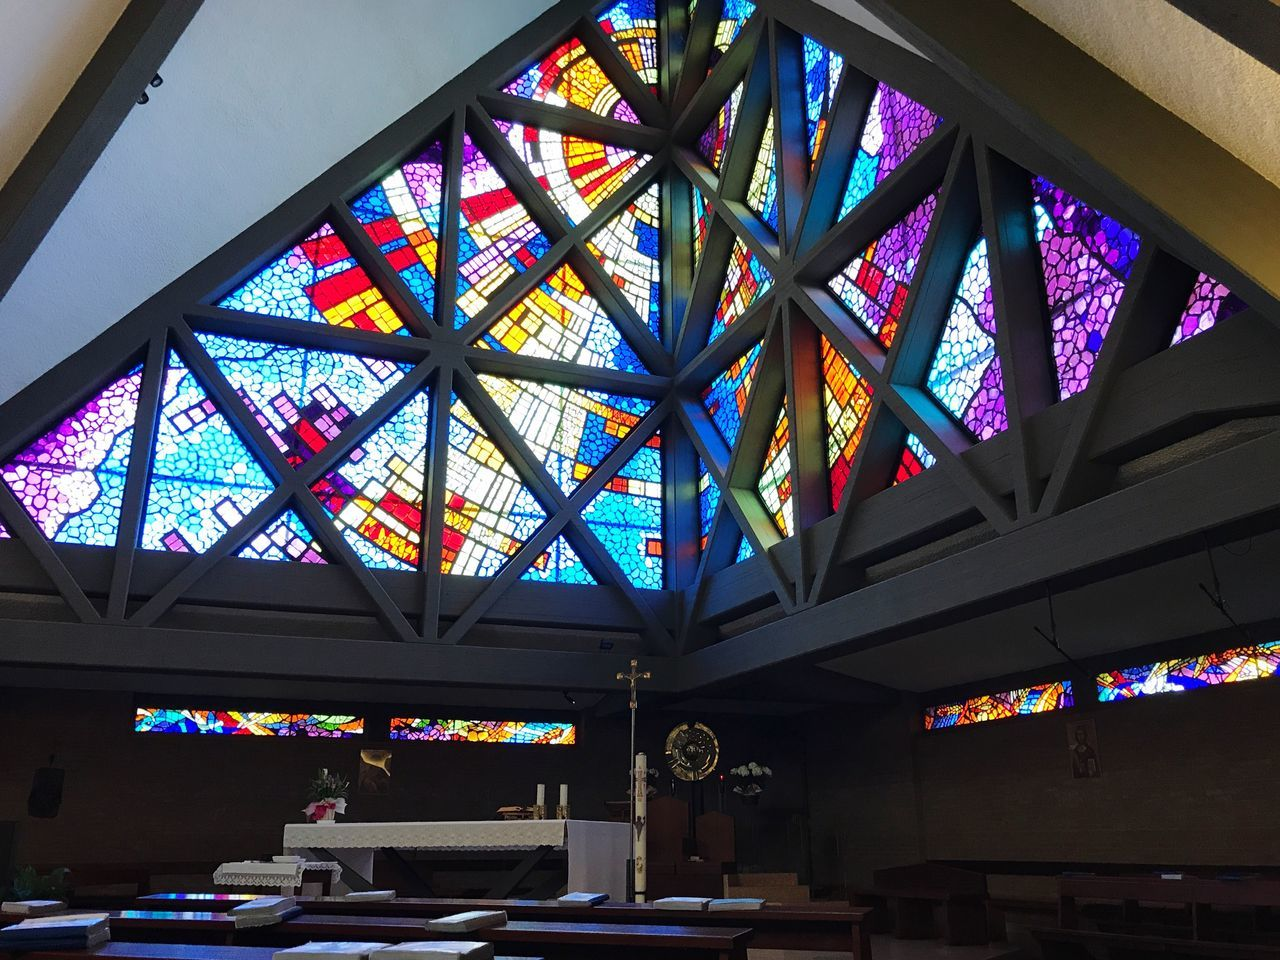 Lifestyles VSCO Vscocam No People Built Structure Architecture Indoors  Ceiling Window Multi Colored Day Church Religious Architecture Religion Color Architecture